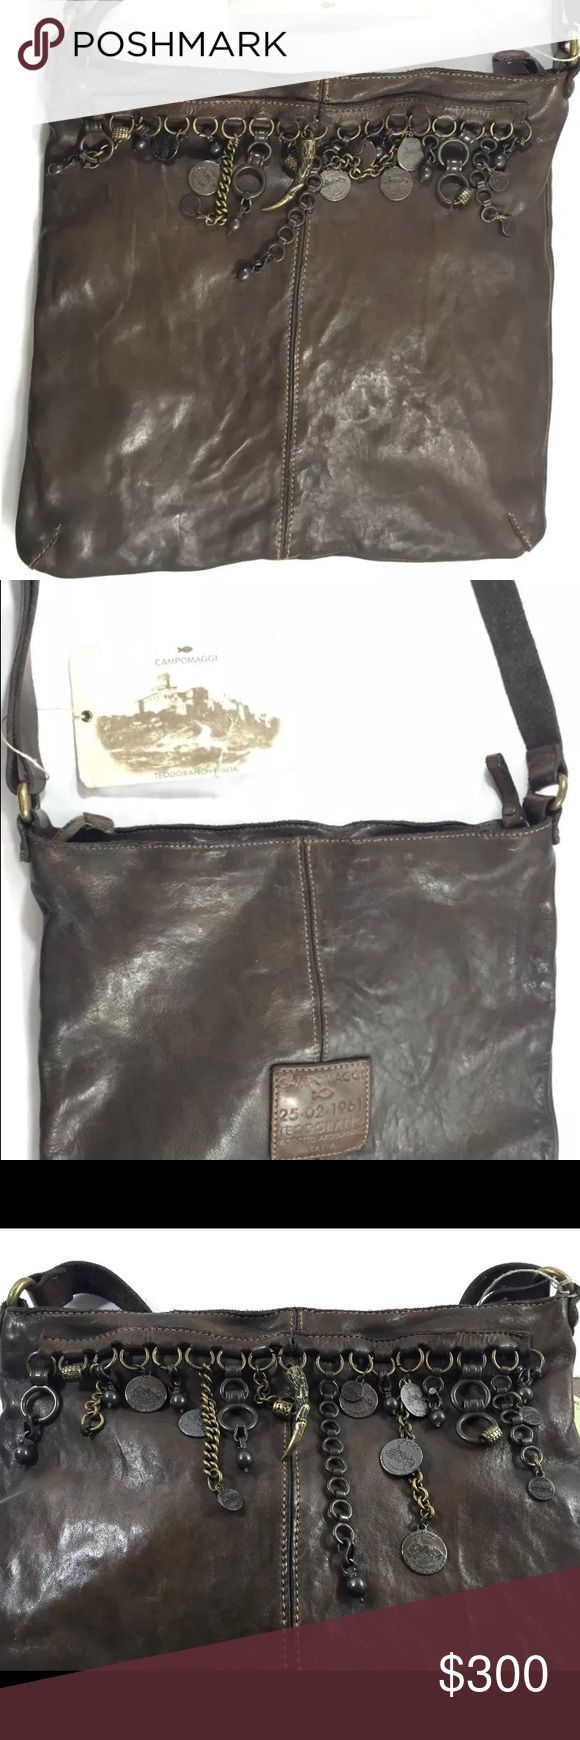 """CAMPOMAGGI Monospalla C/ Pendagil Vacchetta Tapo C3124 VL. Monospalla C/ Pendagil Vacchetta Tapo Grigio 2002. Tg. Unica. With tag. Ash gray  leather in color. Mint condition use only ones. Adjustable strap of 15""""-25"""". 100% authentic. Unique in design. Top zip closure. Zippered pocket inside with cellphone slip pocket and a key holder. No dust bag. Made in Italy. campomaggi Bags Crossbody Bags"""